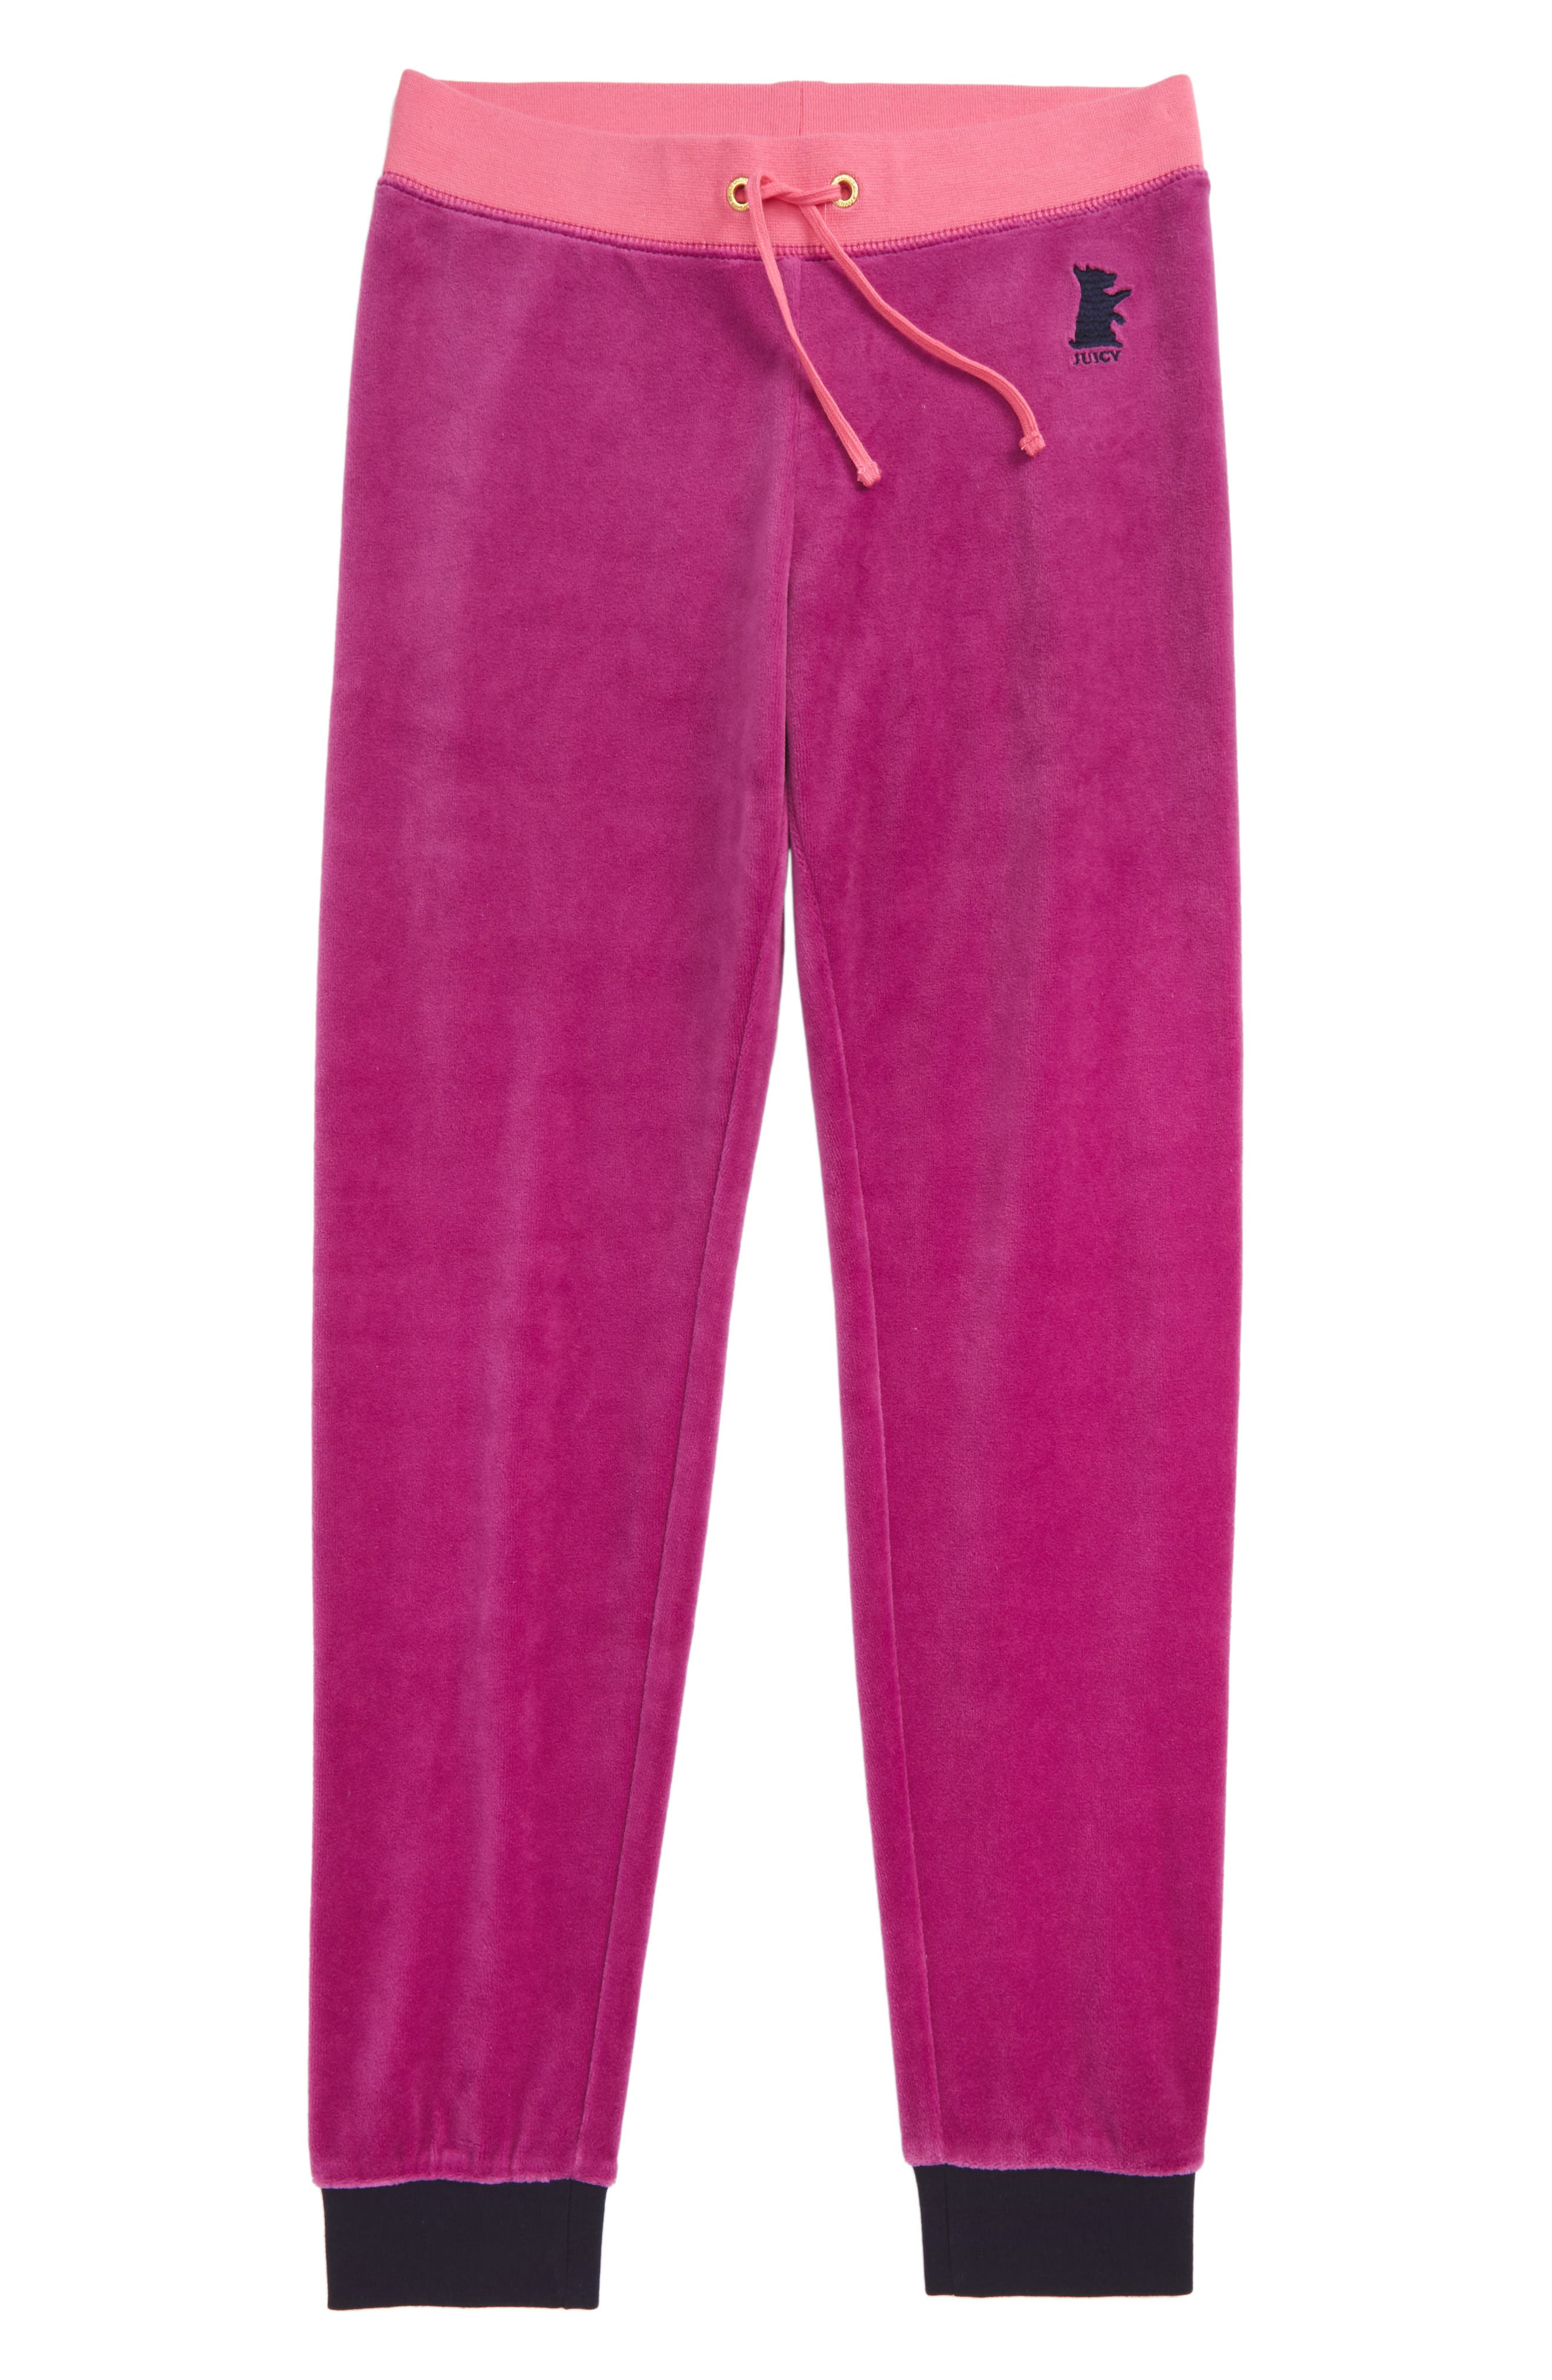 Alternate Image 1 Selected - Juicy Couture Zuma Velour Pants (Big Girls)